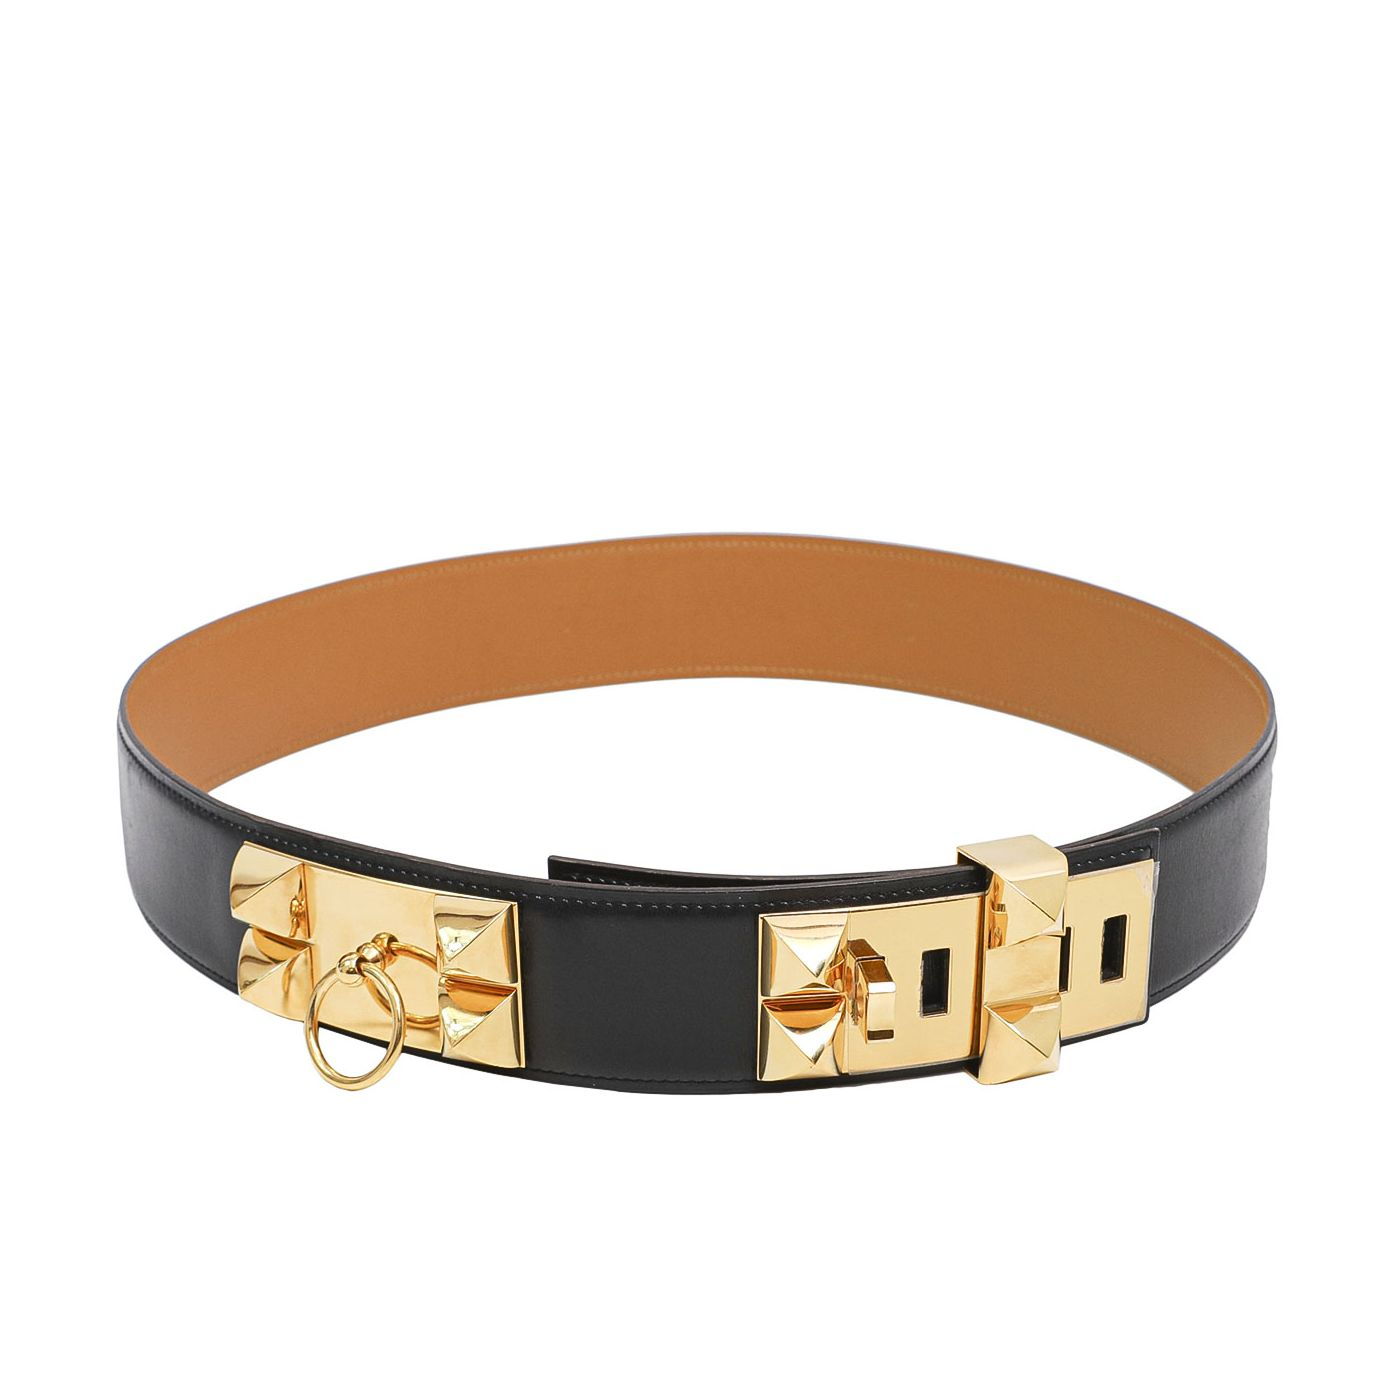 Hermes Black Collier De Chien Belt